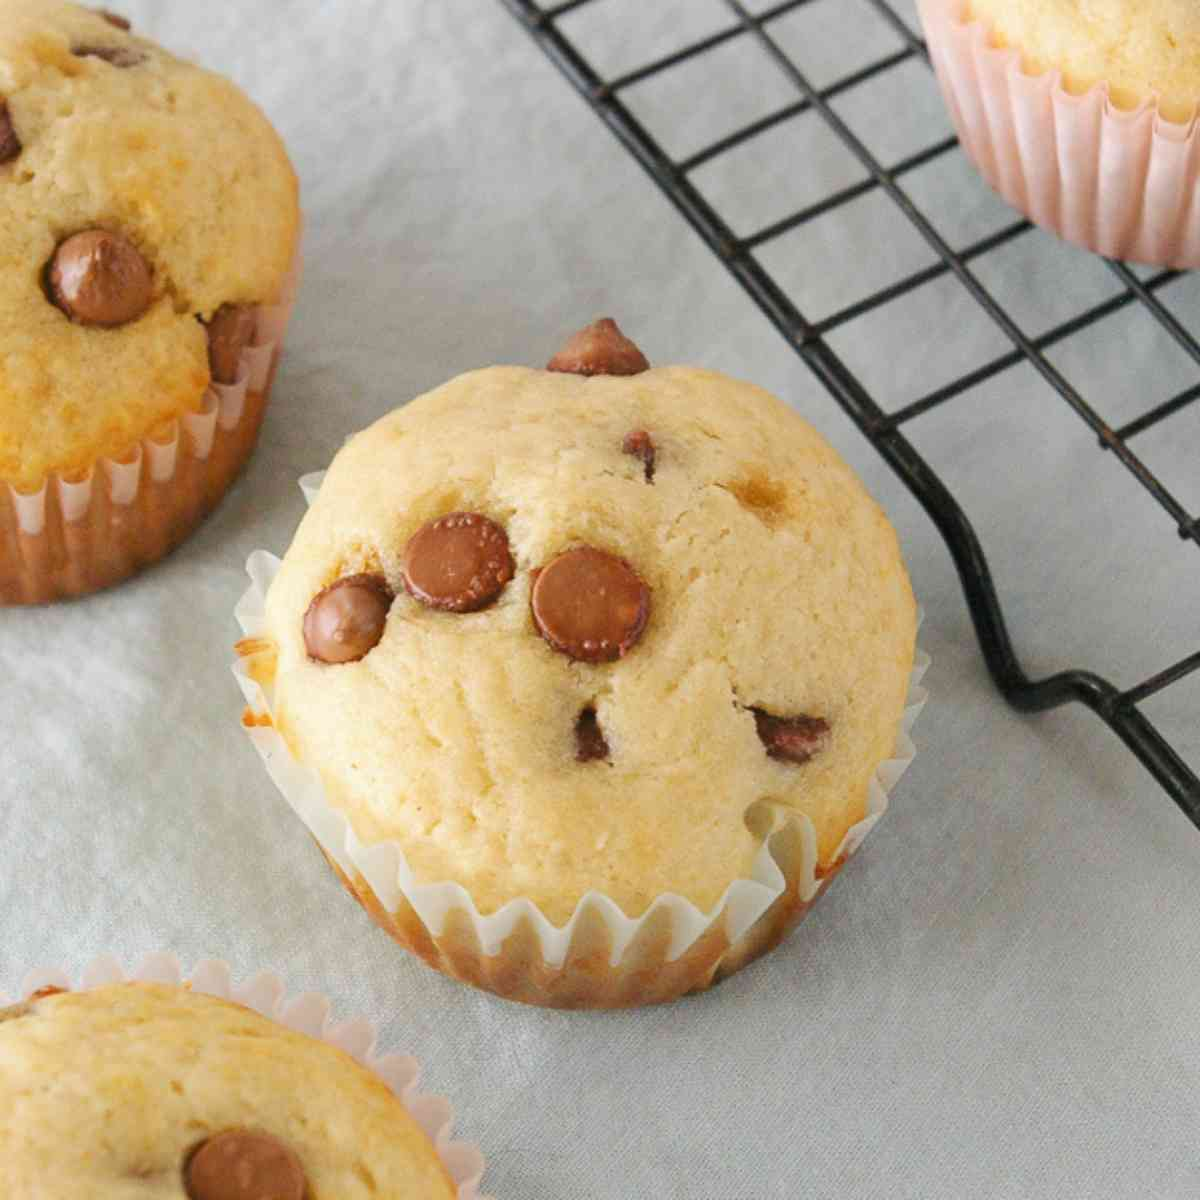 Baked chocolate chip muffins.